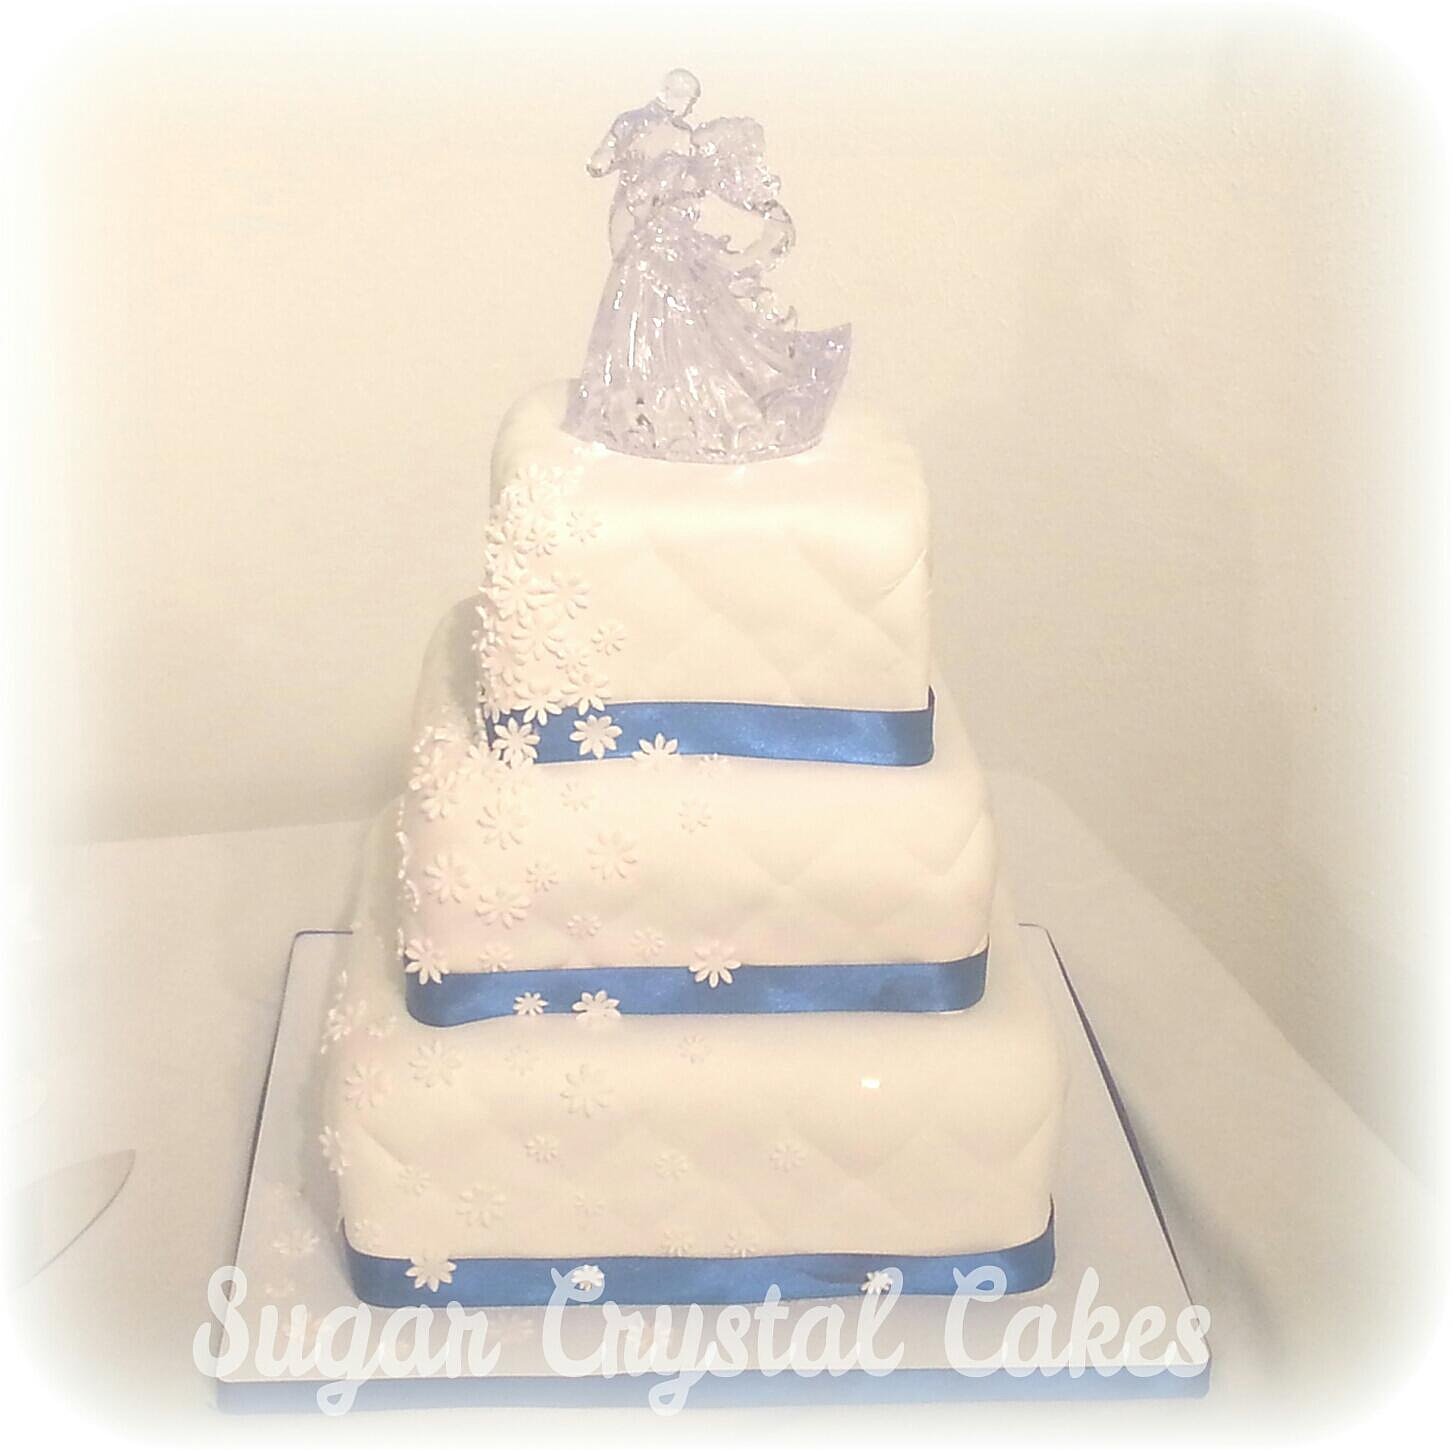 Sugar Crystal Cakes